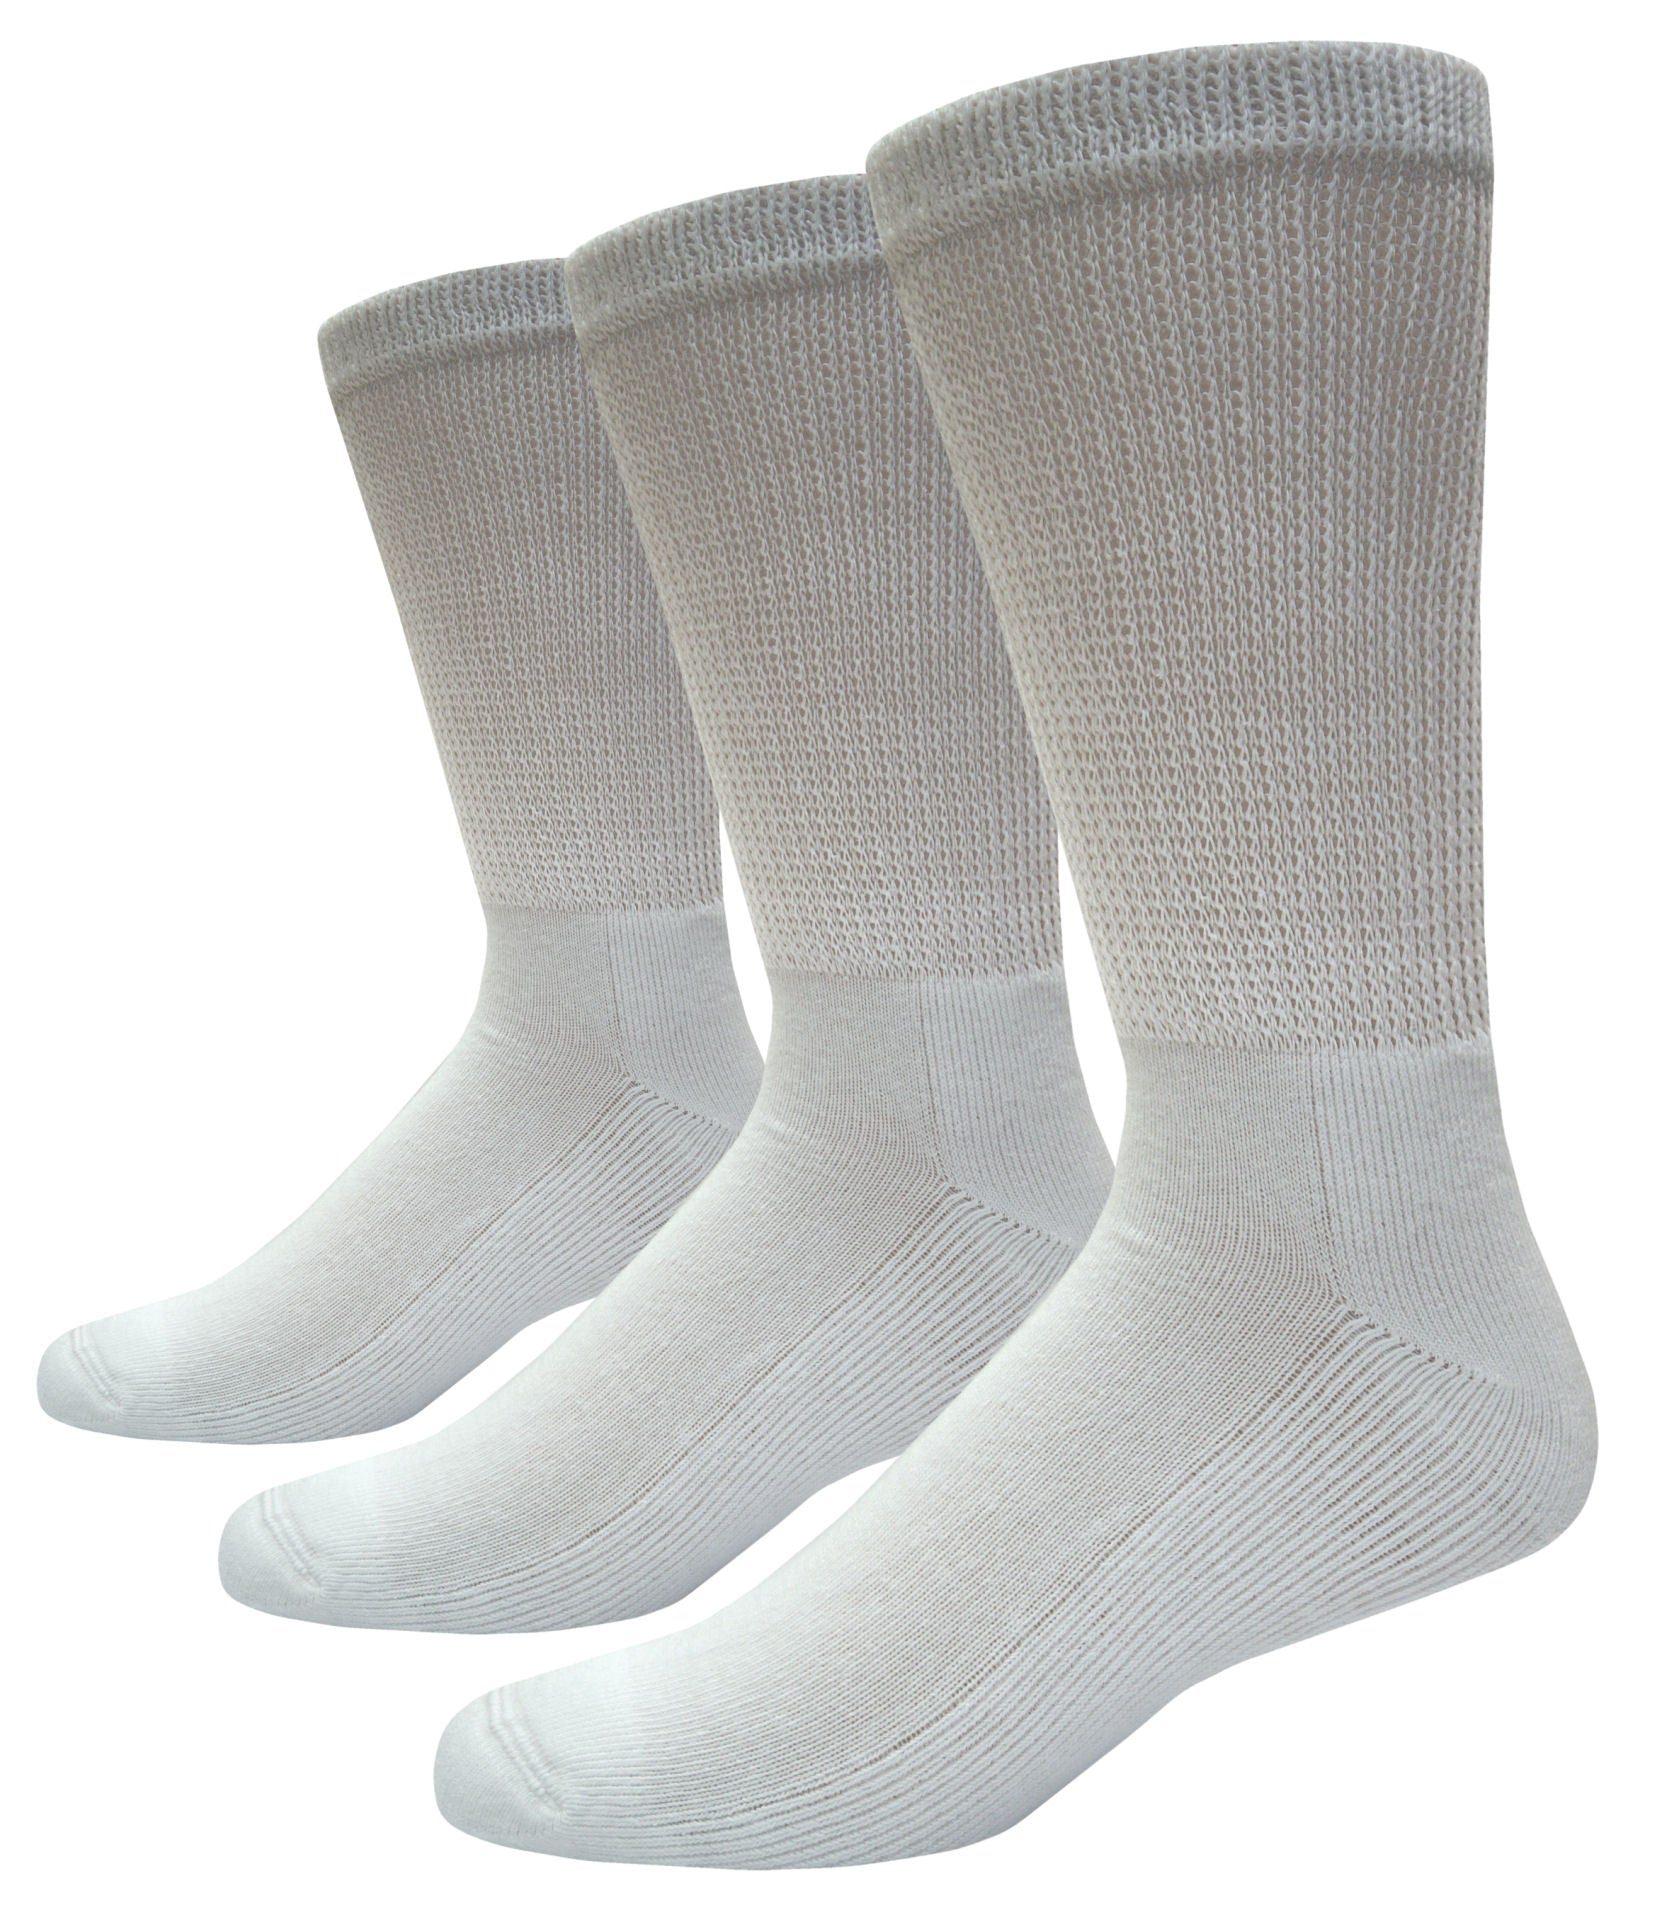 Foot Comfort Diabetic Care White Cotton Crew Socks 3 Pairs